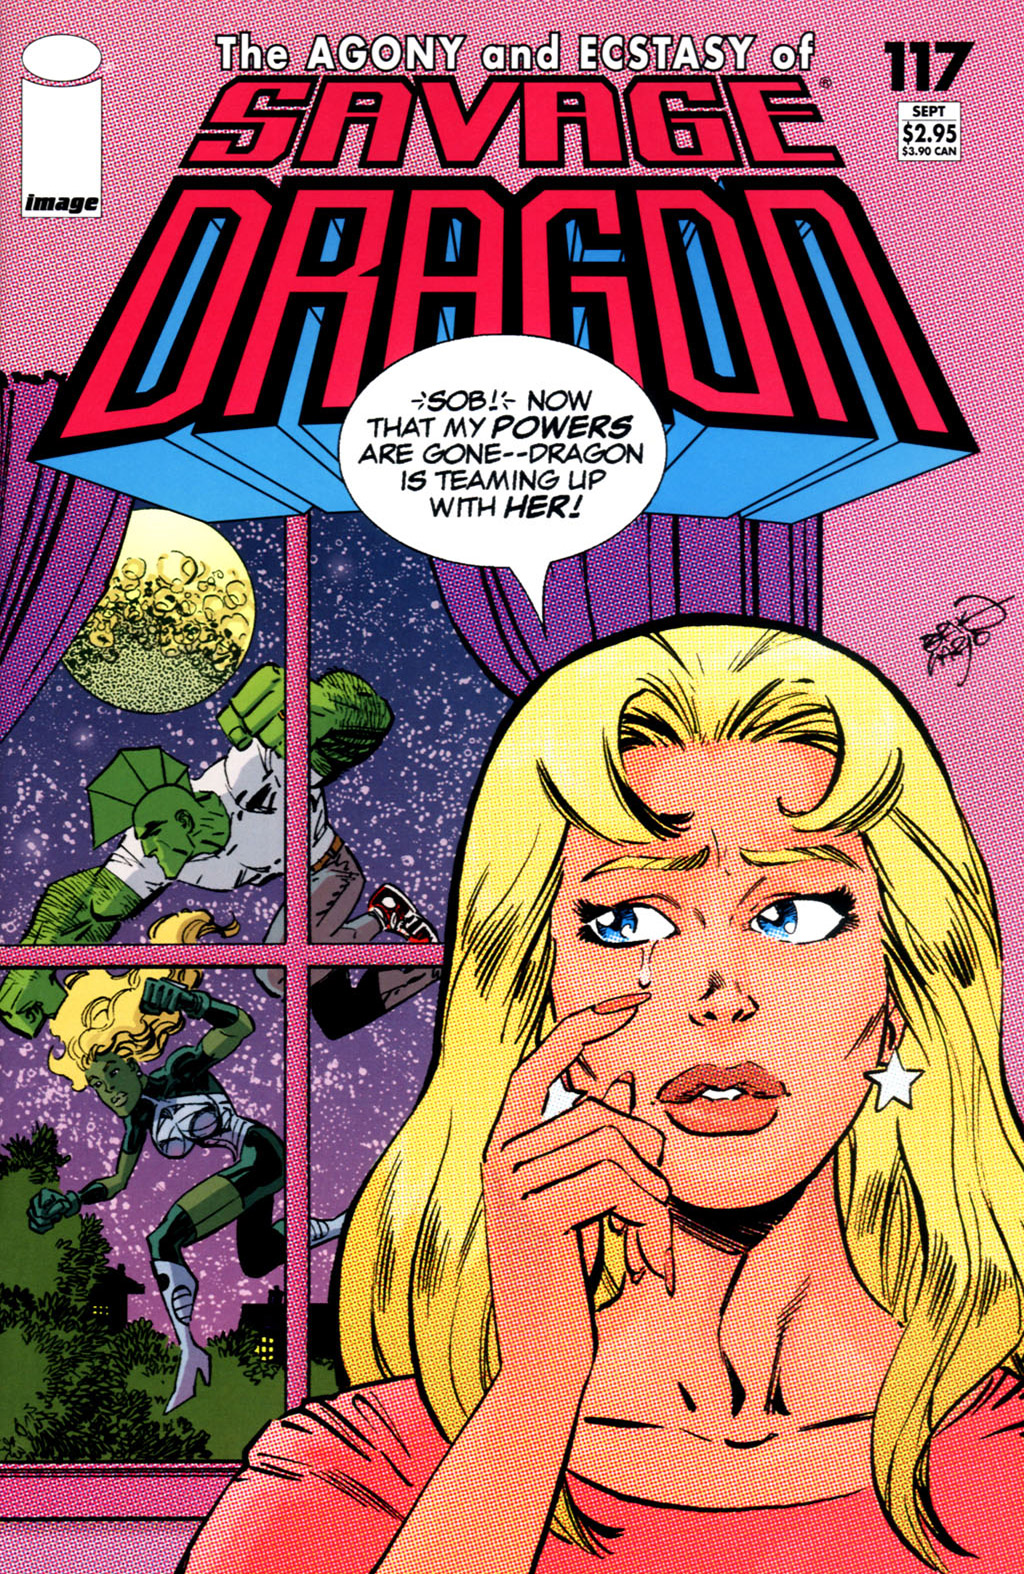 Cover Savage Dragon Vol.2 #117